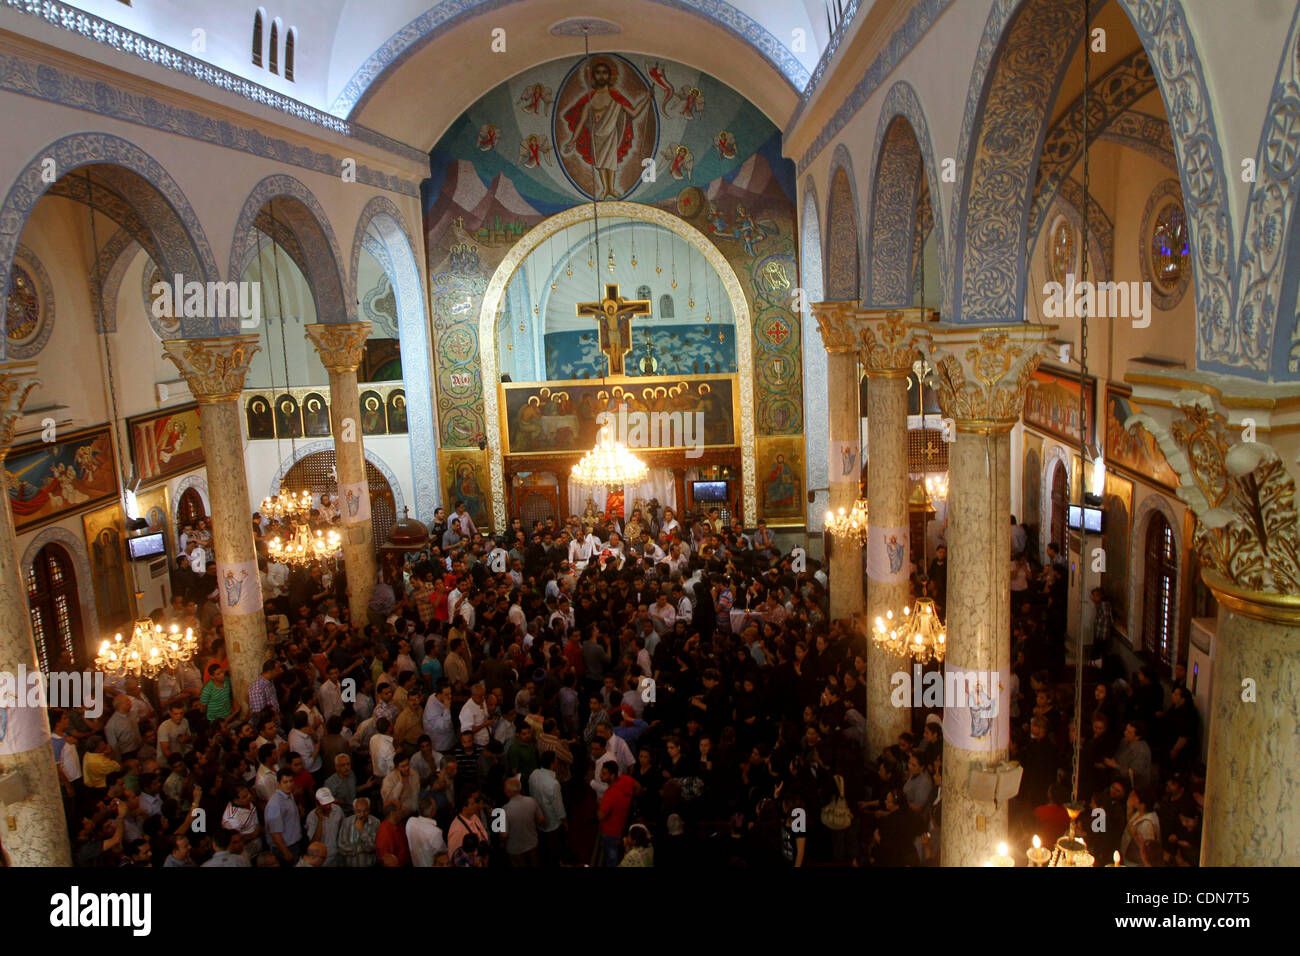 May 08, 2011 - Cairo, Egypt - Egyptian Coptic Christians mourn during the funeral of a victim of sectarian clashes. - Stock Image